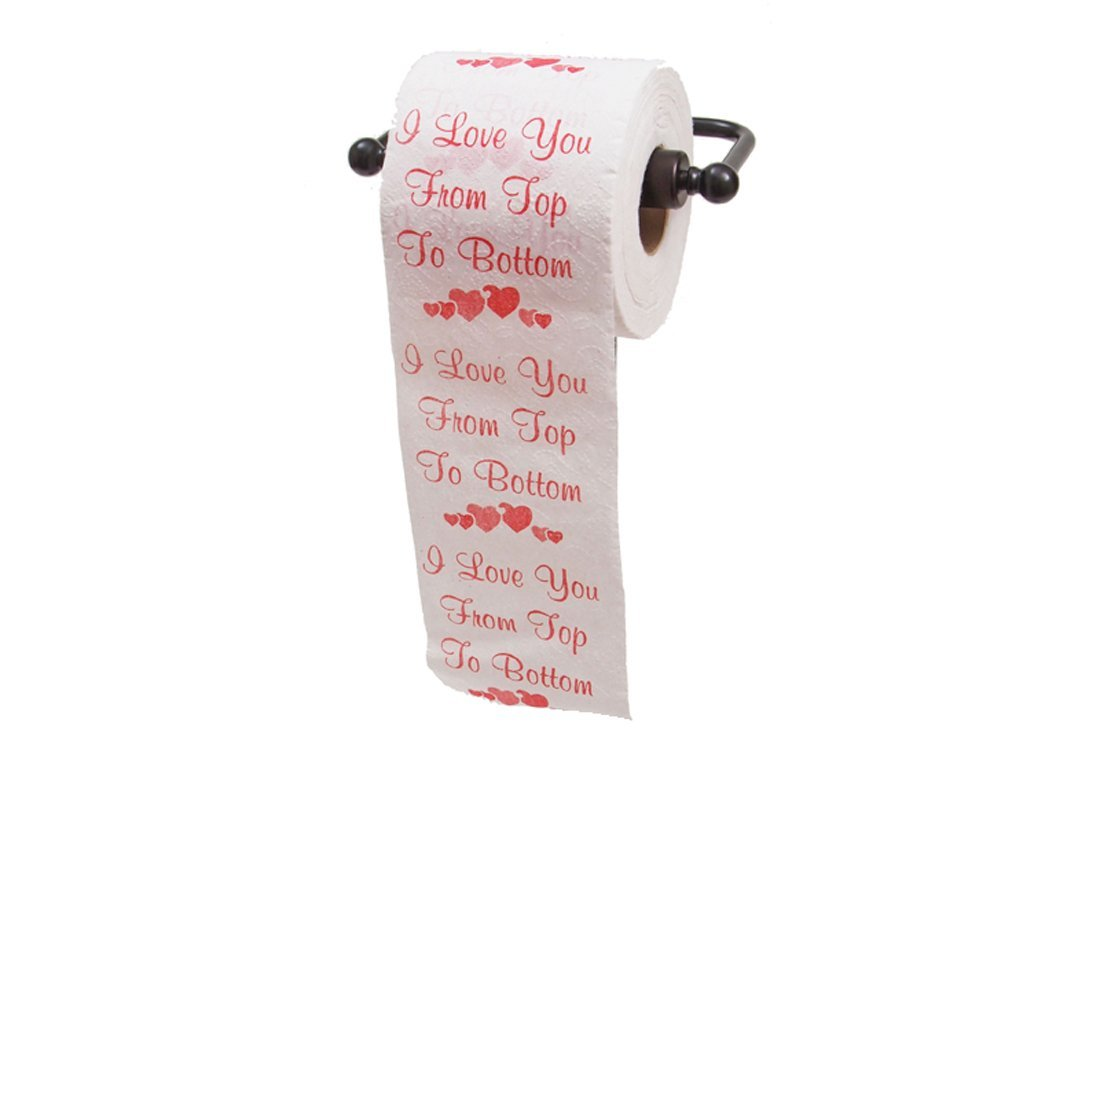 Toilet Paper Gift, GREAT for VALENTINES DAY! | TLG